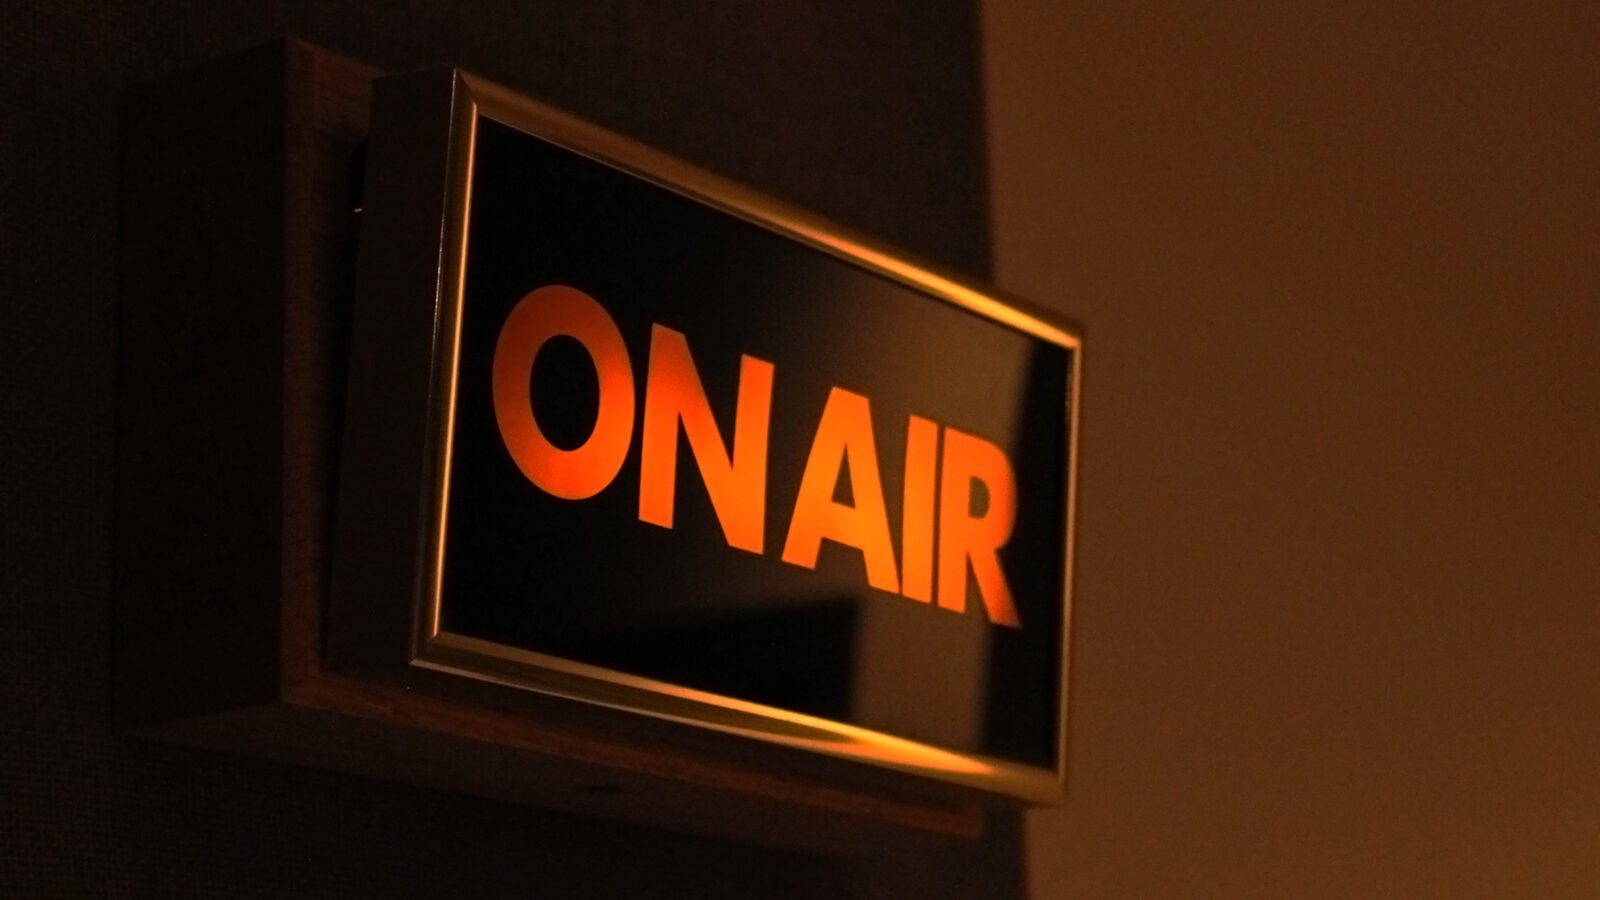 The on air light in WFMT's Levin Performance Studio. radio. color photo